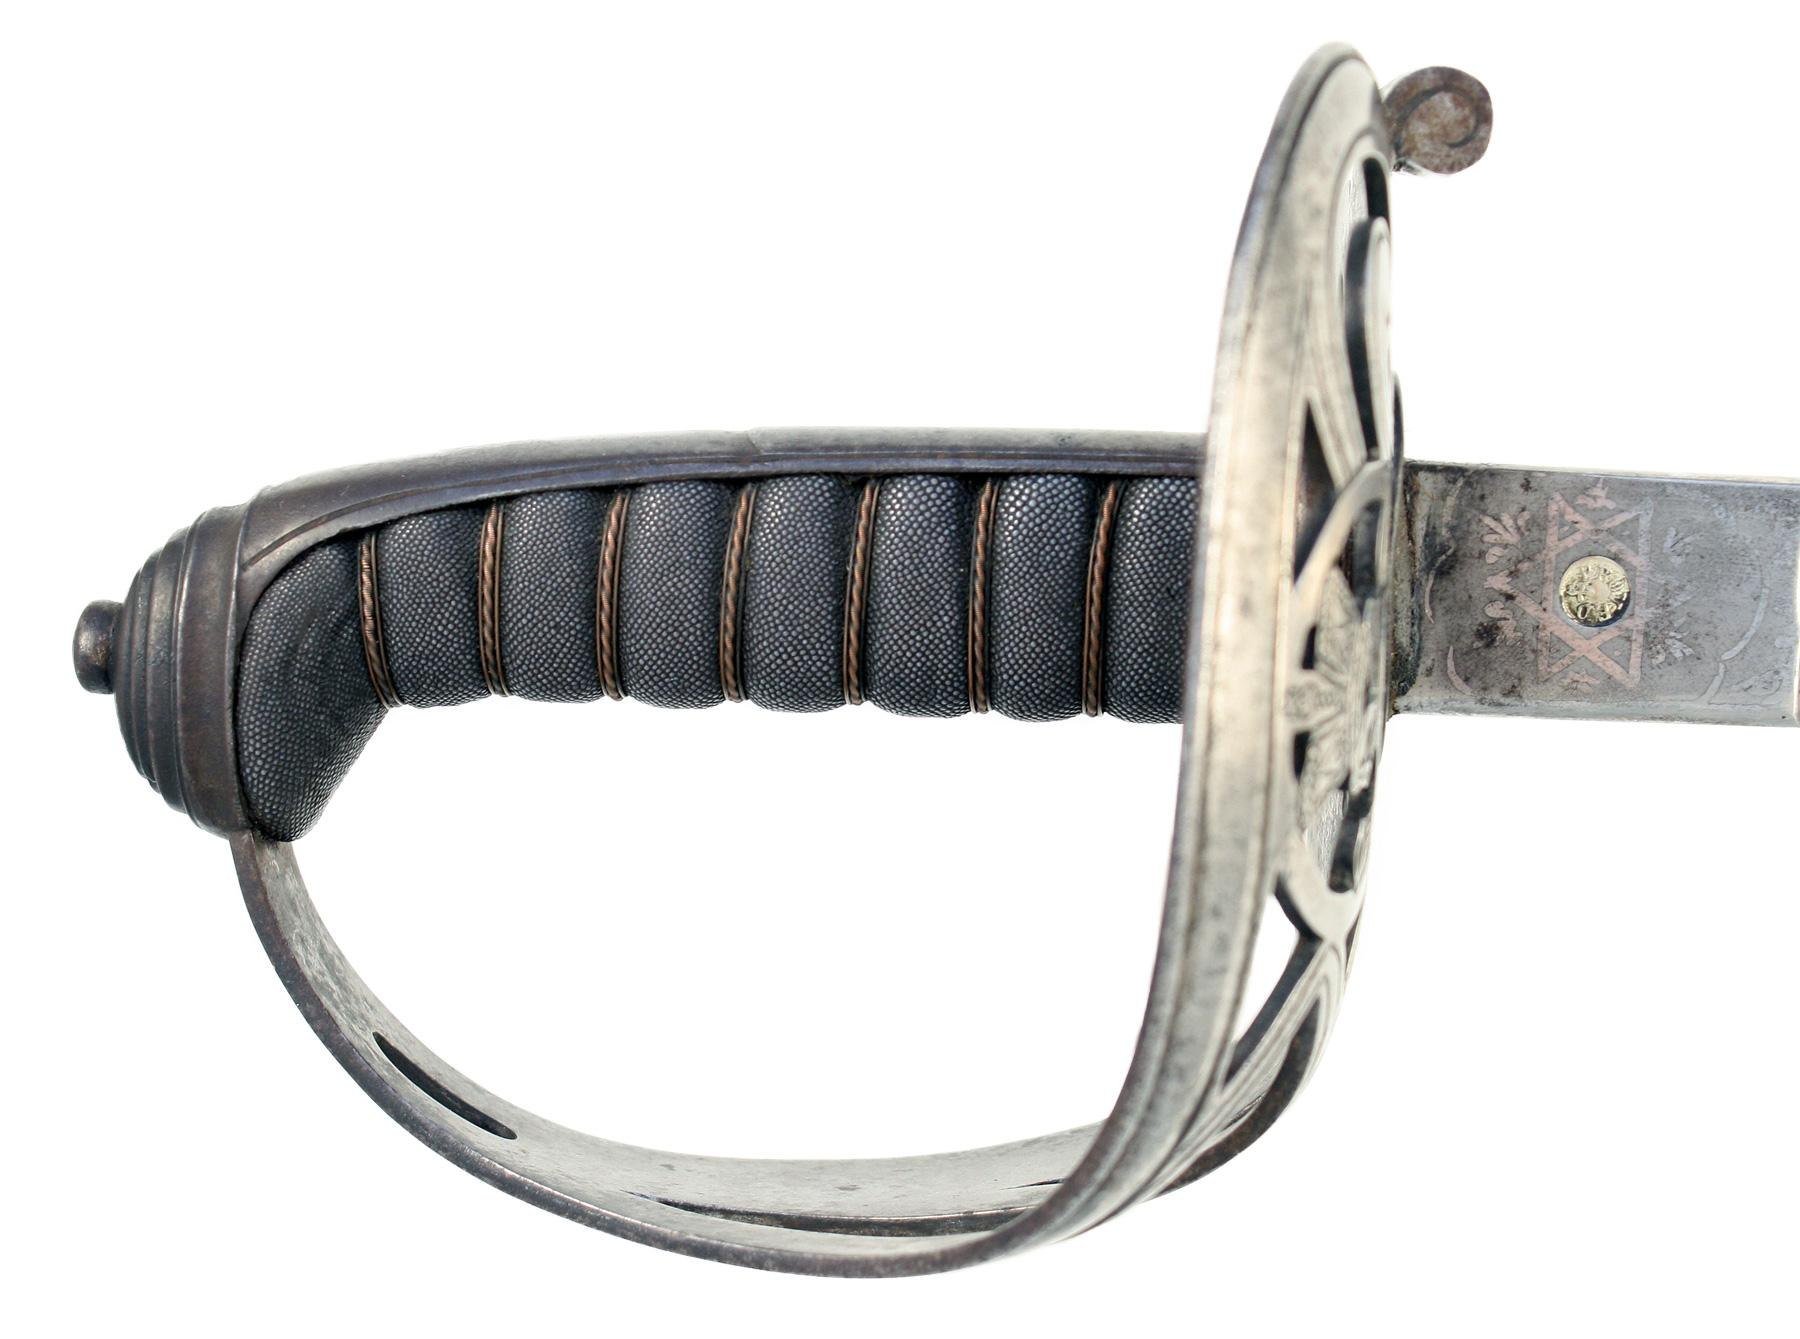 A Rifle Regiment Sword